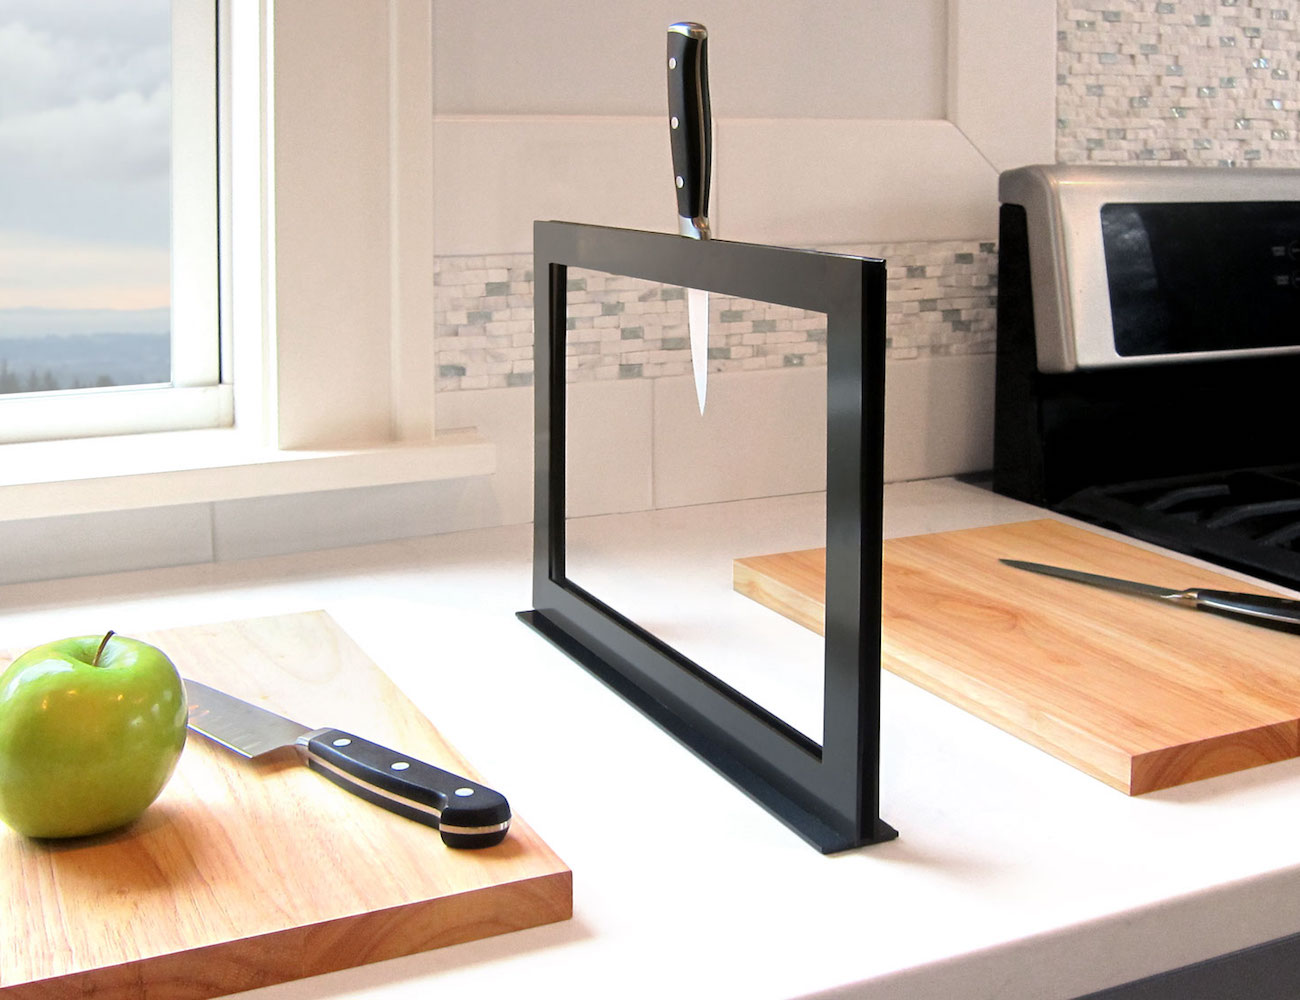 Chops – Magnetically Connected Chopping Boards With a Knife Rack